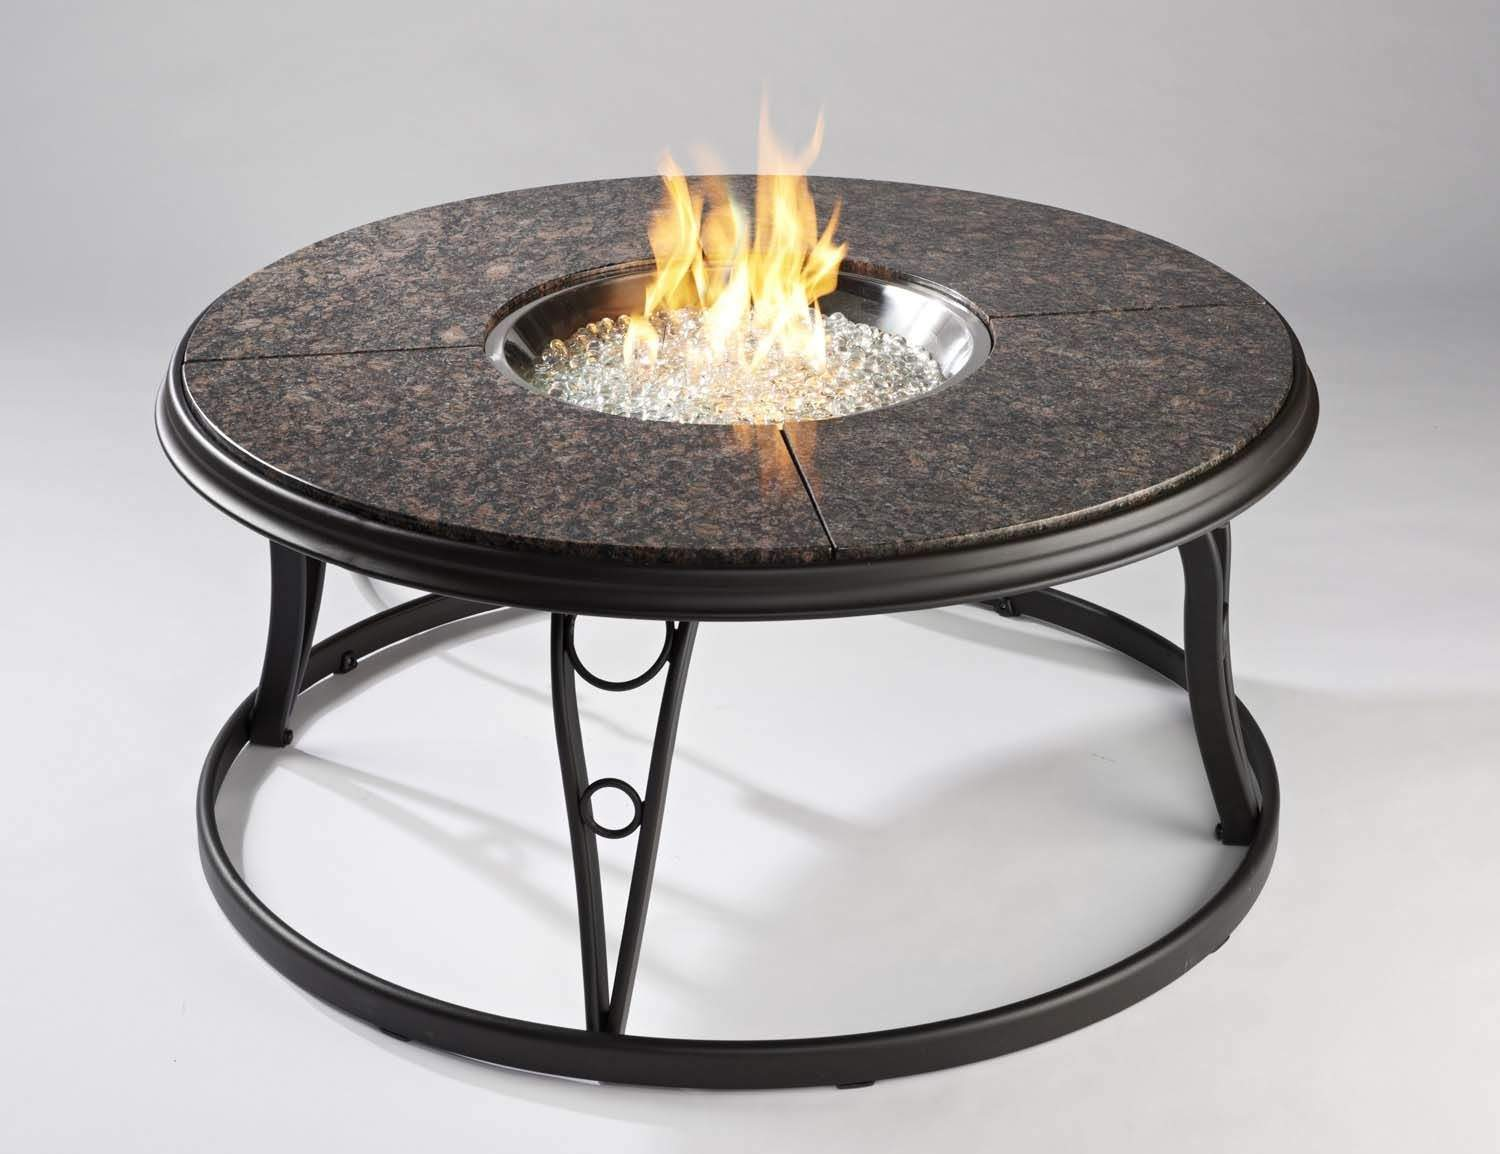 Outdoor Greatroom Granite 42 Inch Round Gas Fire Pit Table